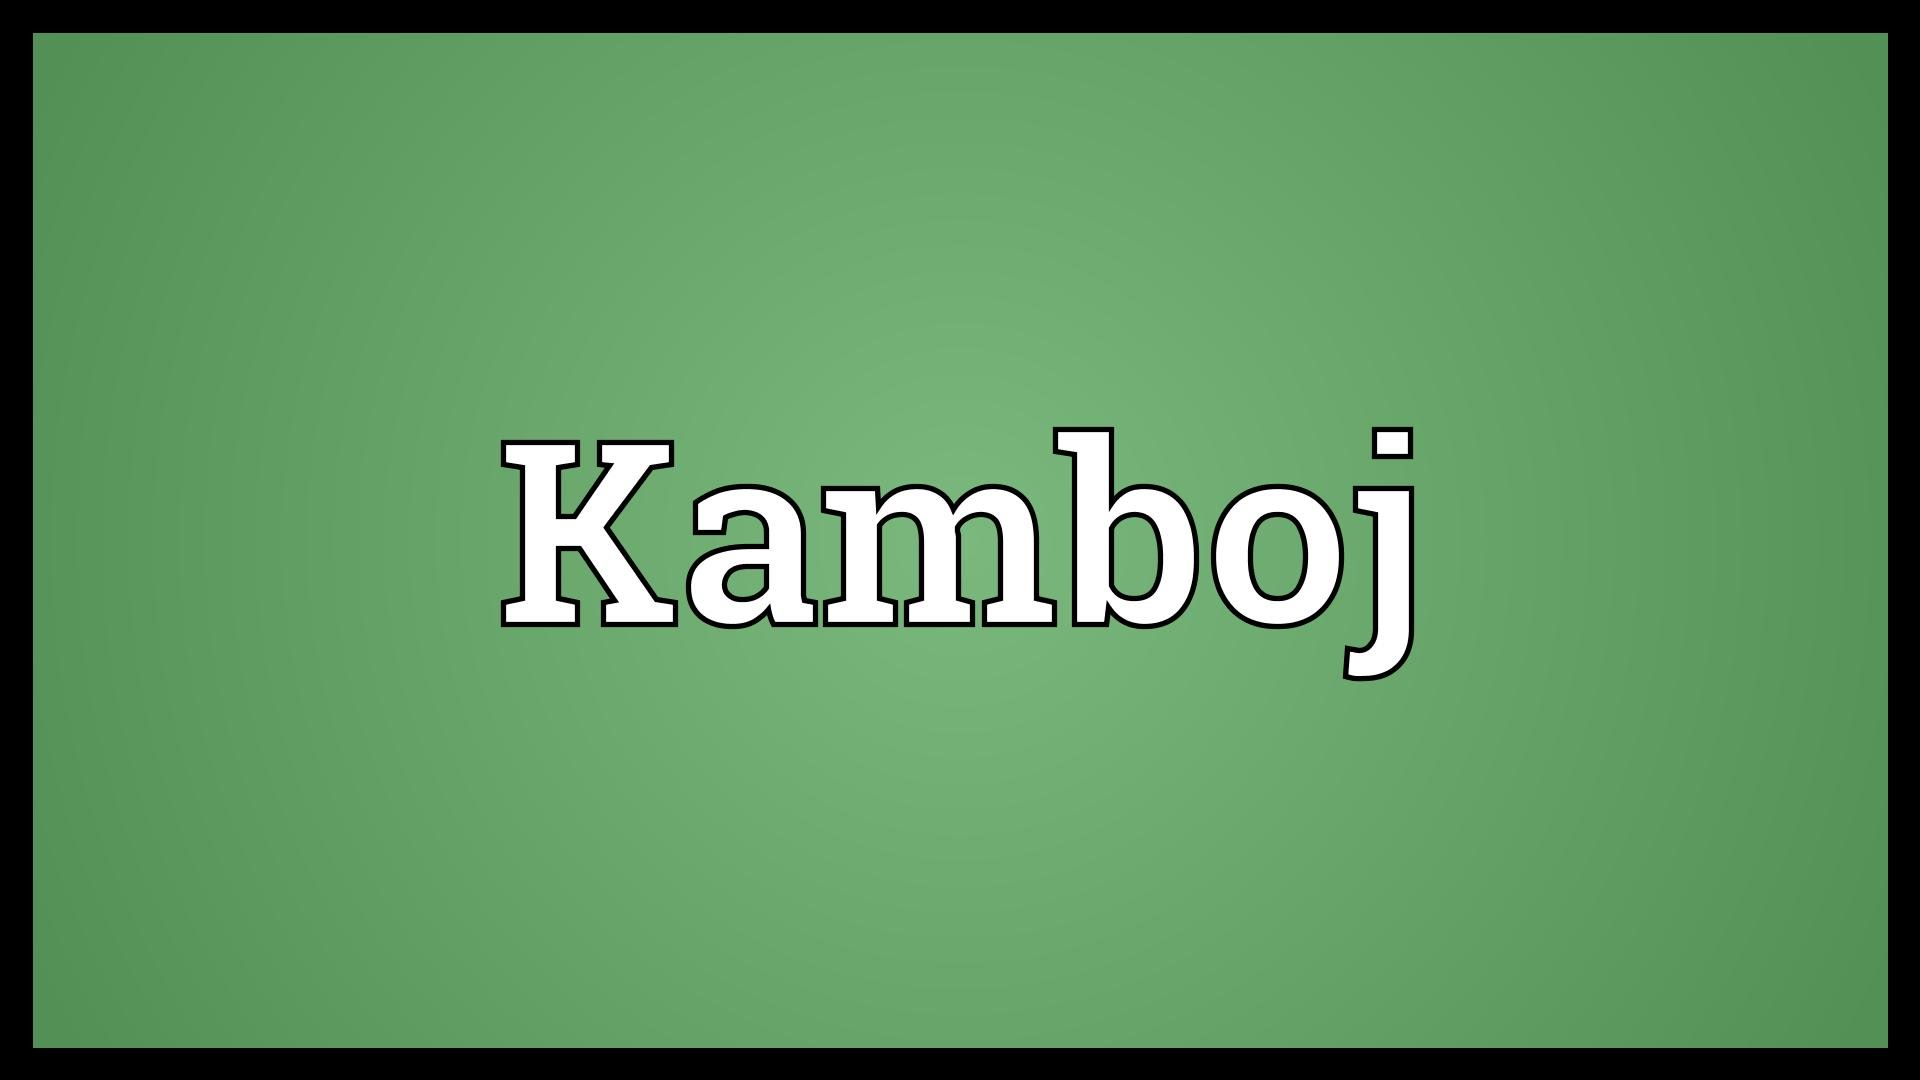 Meaning of Kamboj word